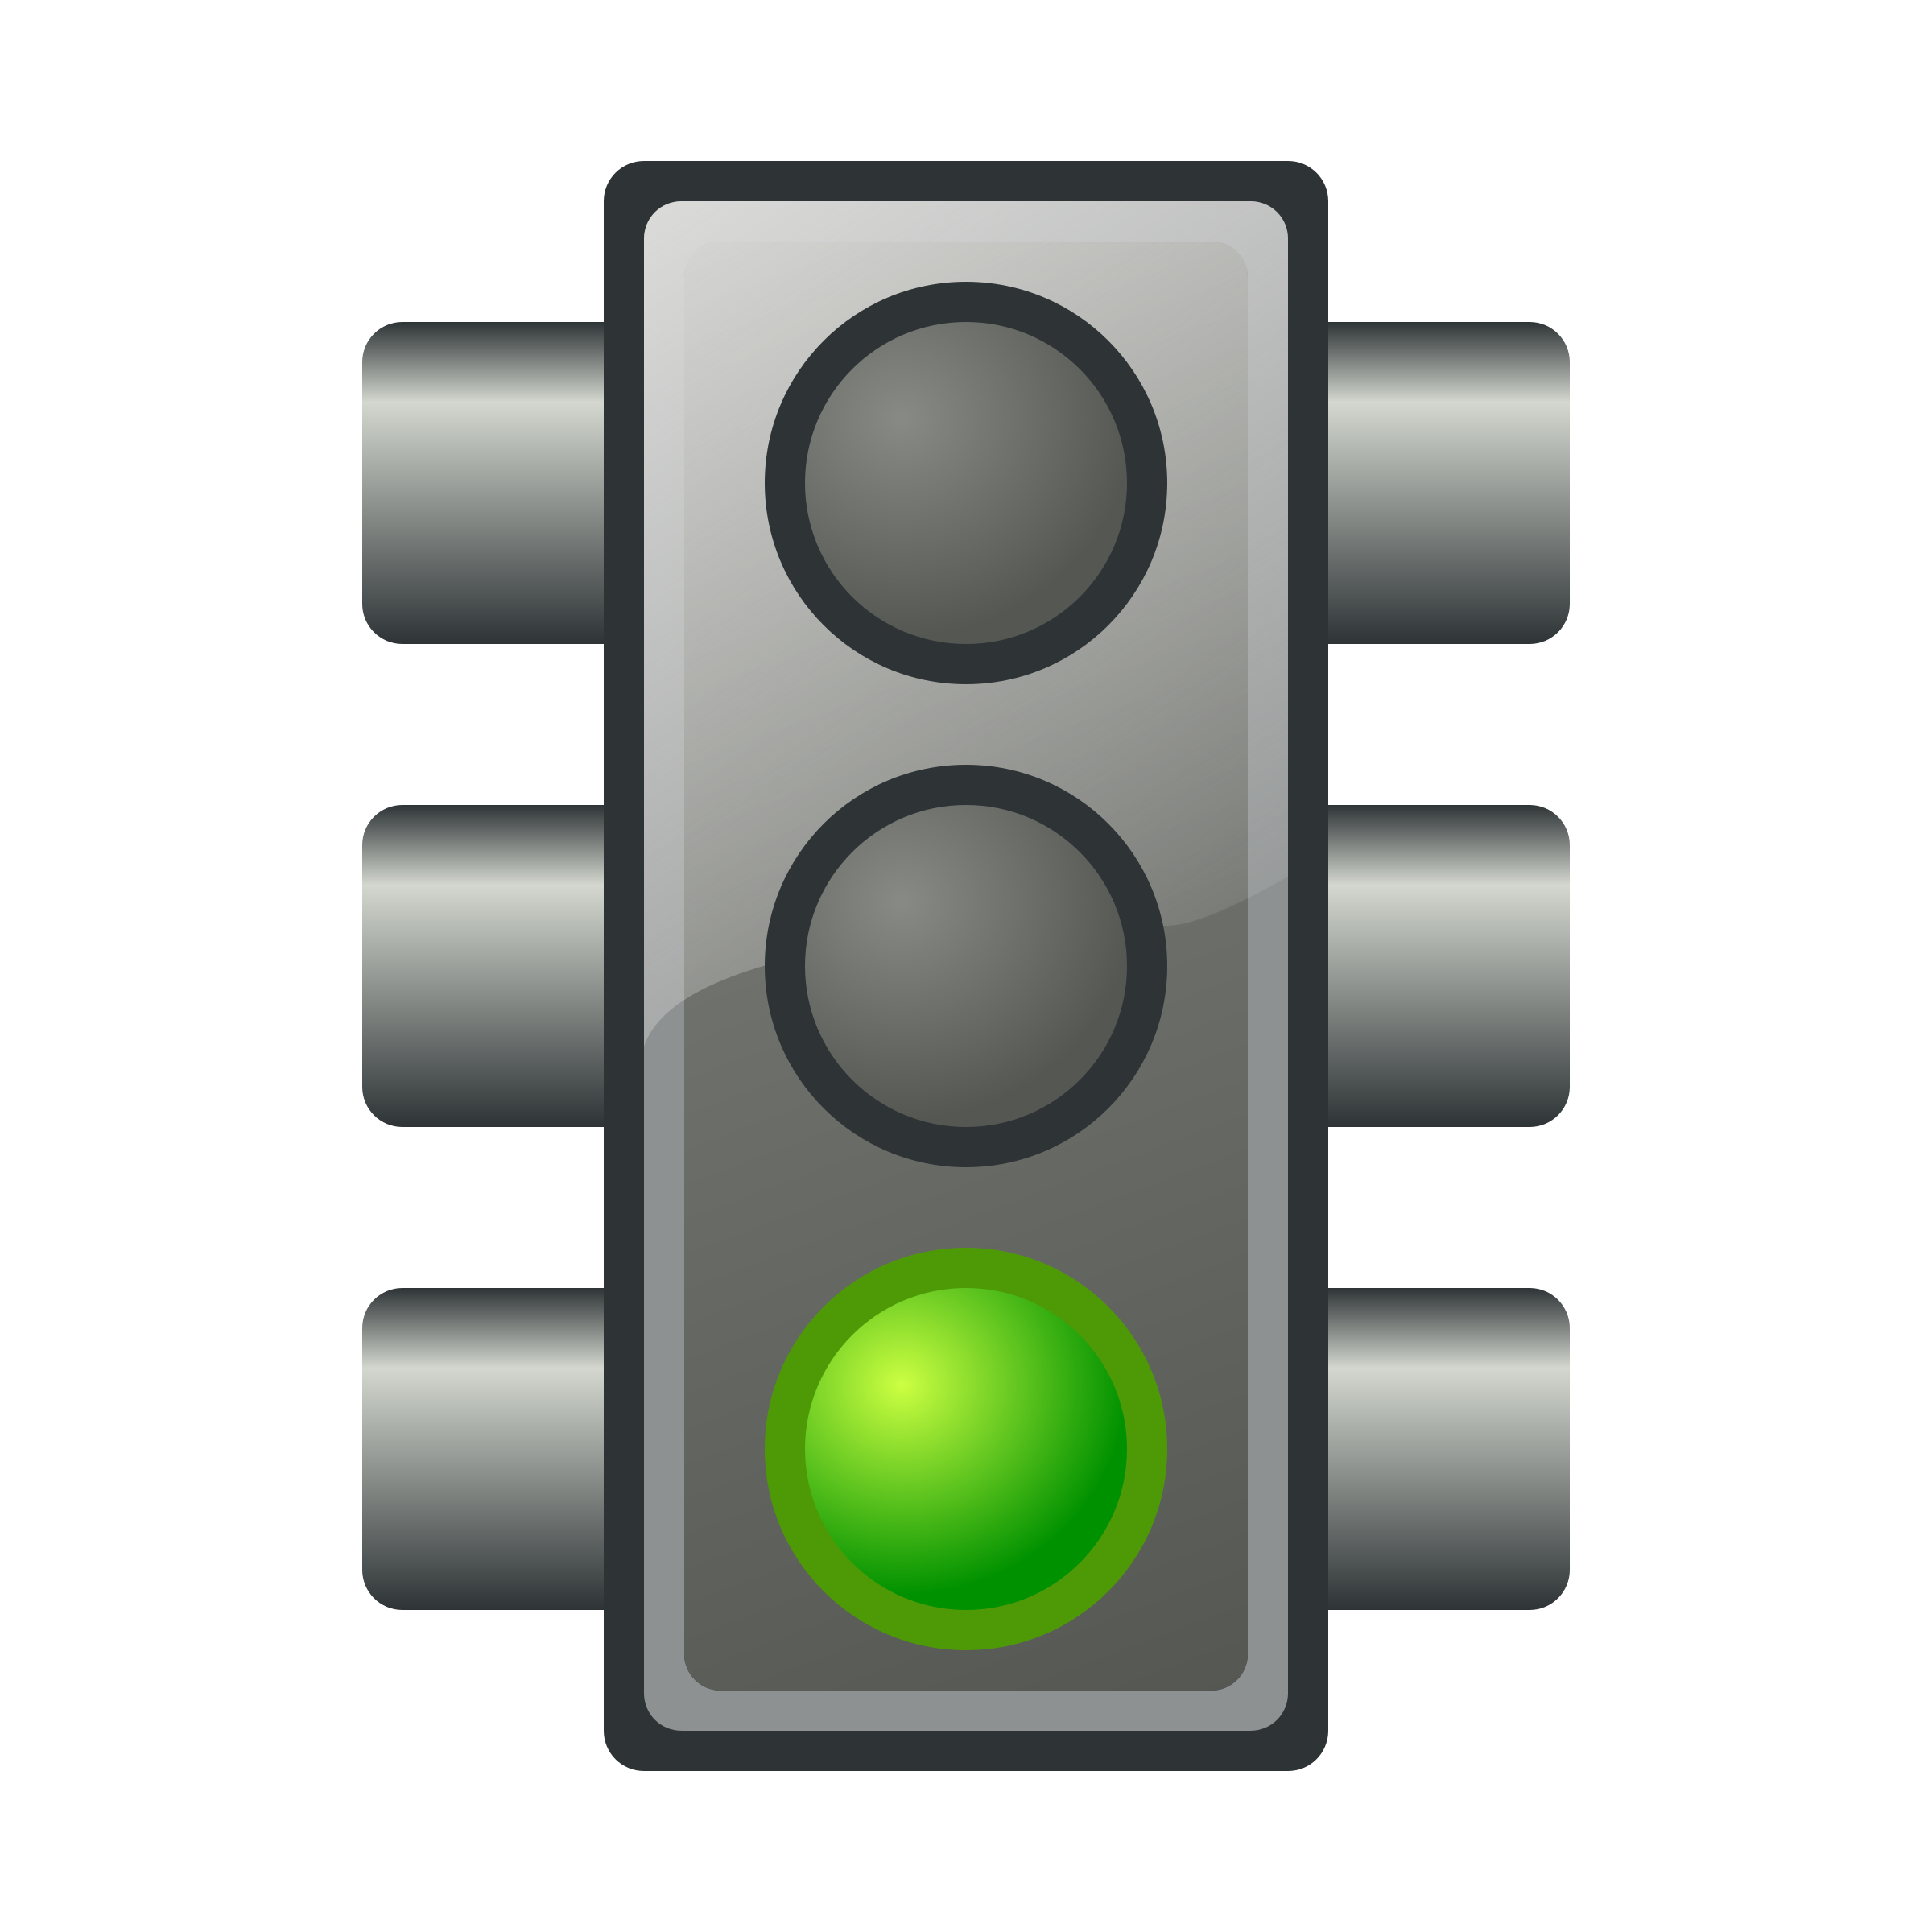 Green traffic light by jhnri4